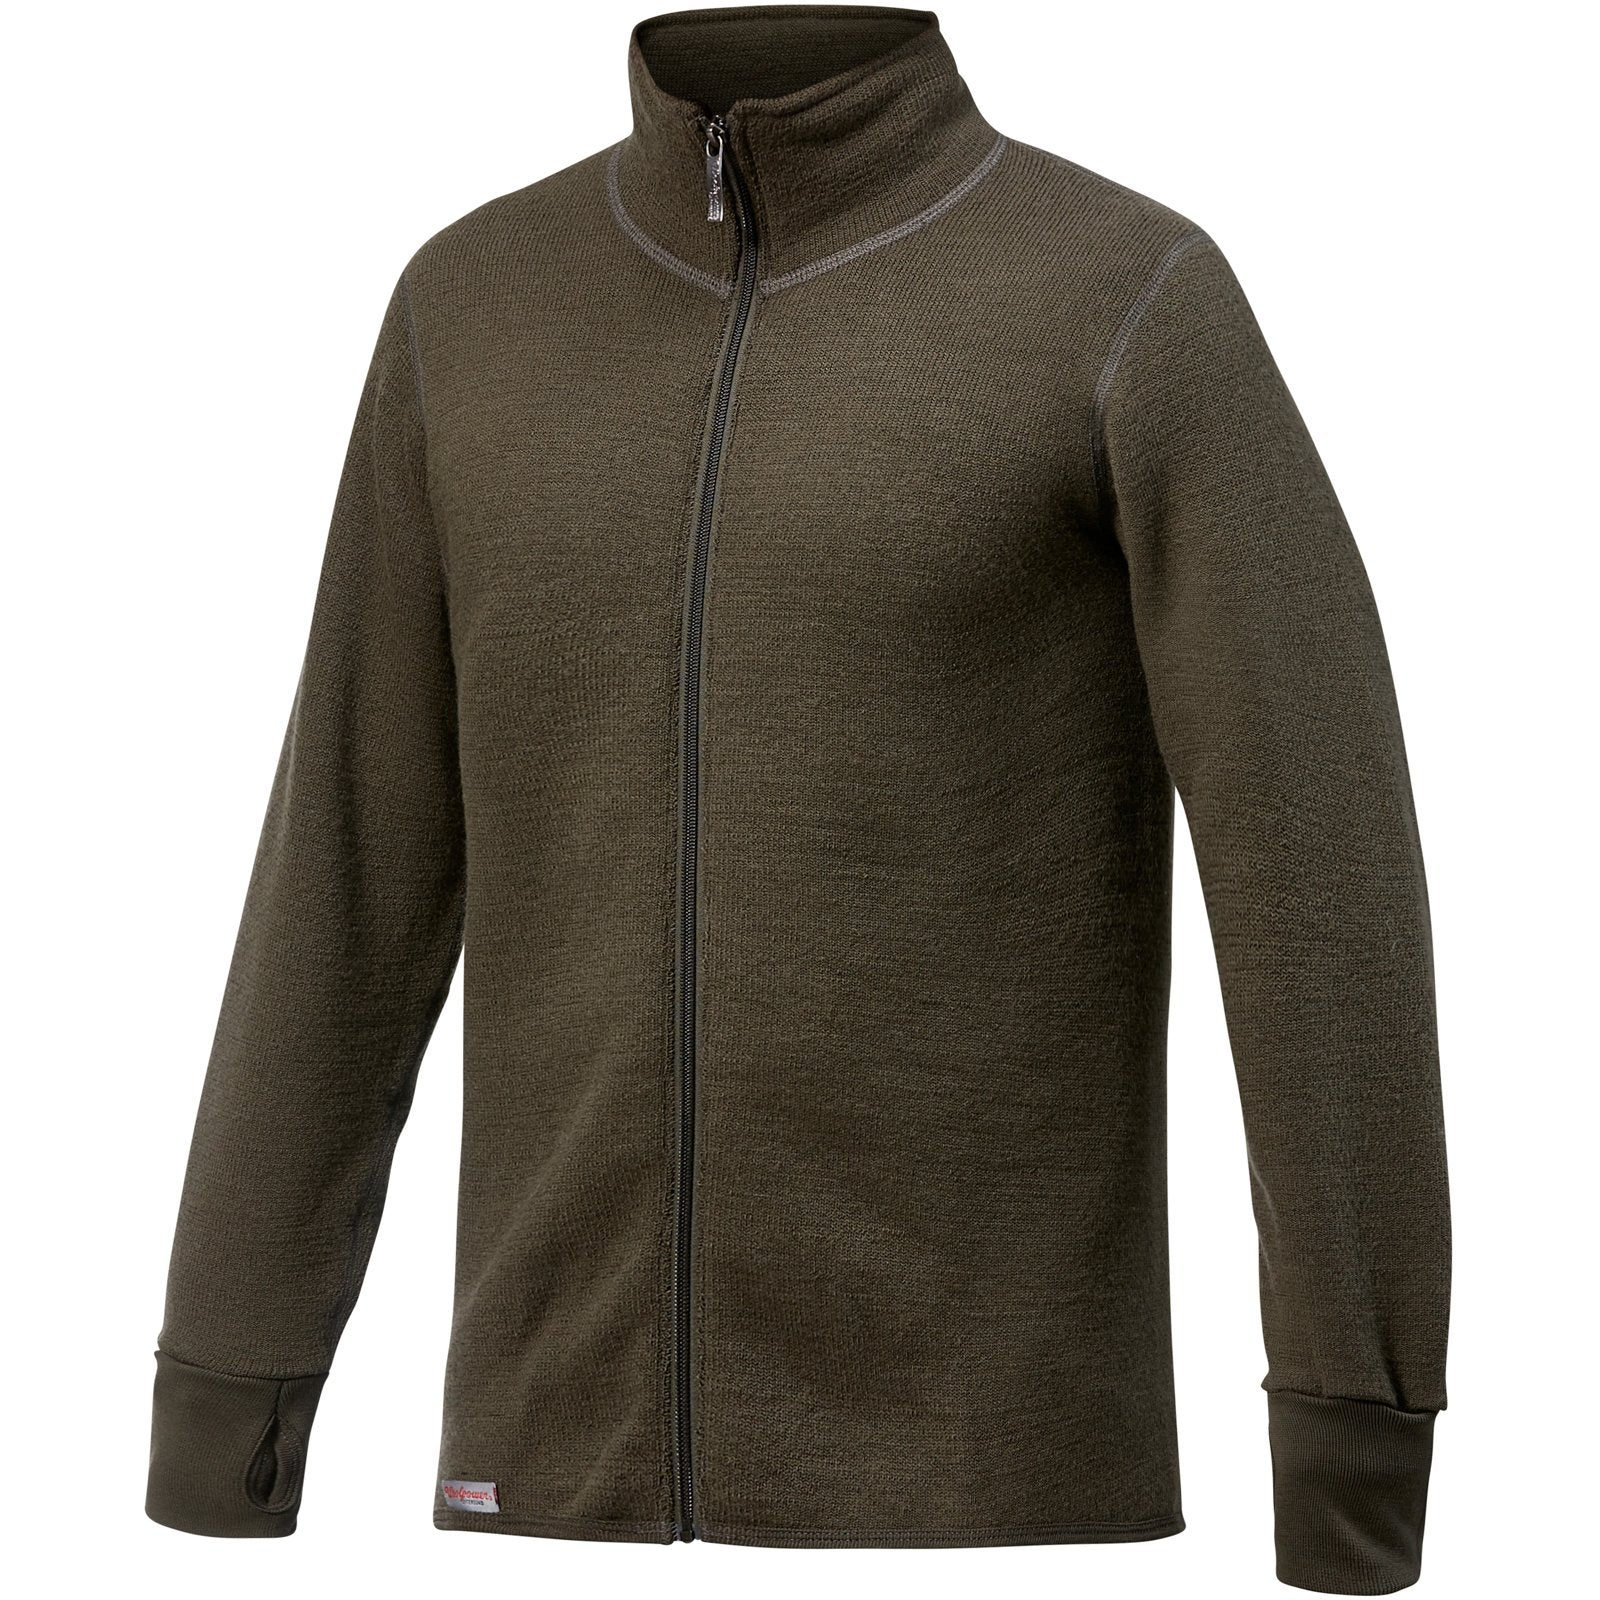 Woolpower Full Zip Jacket 600 - Adult's